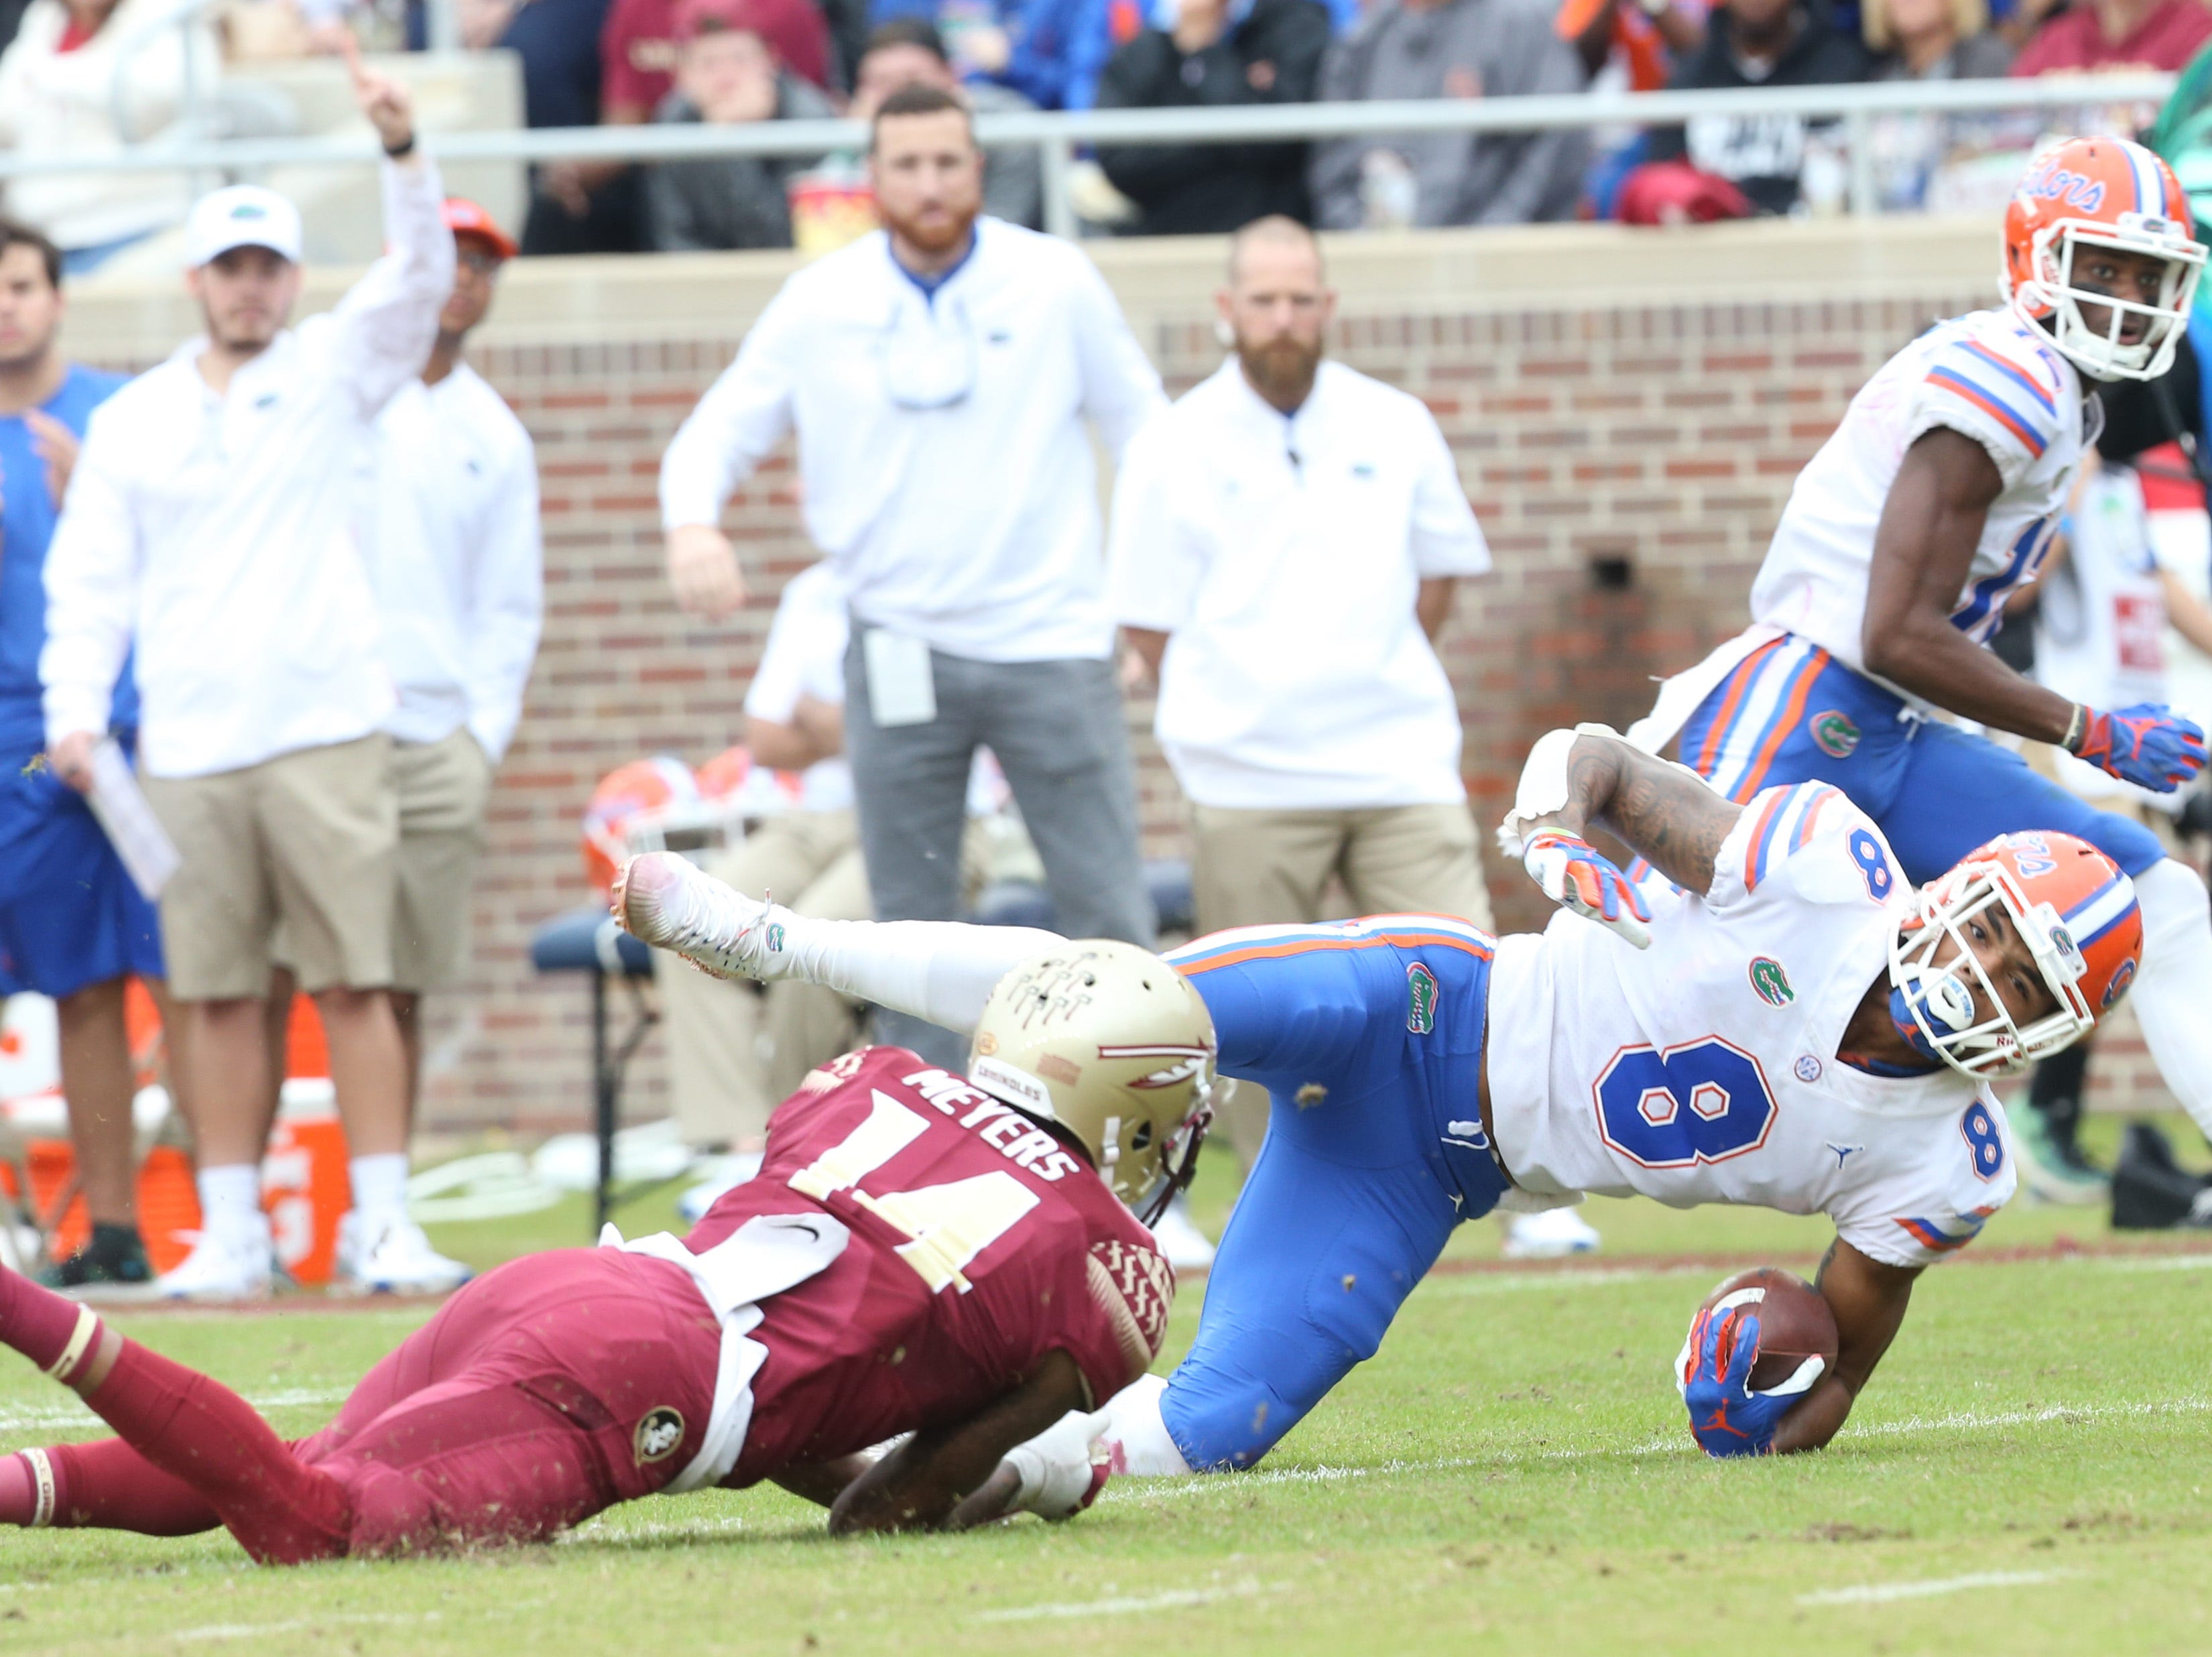 Florida Gators wide receiver Trevon Grimes (8) gets taken down by Florida State Seminoles defensive back Kyle Meyers (14) as the Florida State Seminoles take on their rival the Florida Gators in college football at Doak S. Campbell Stadium, Saturday, Nov. 24, 2018.